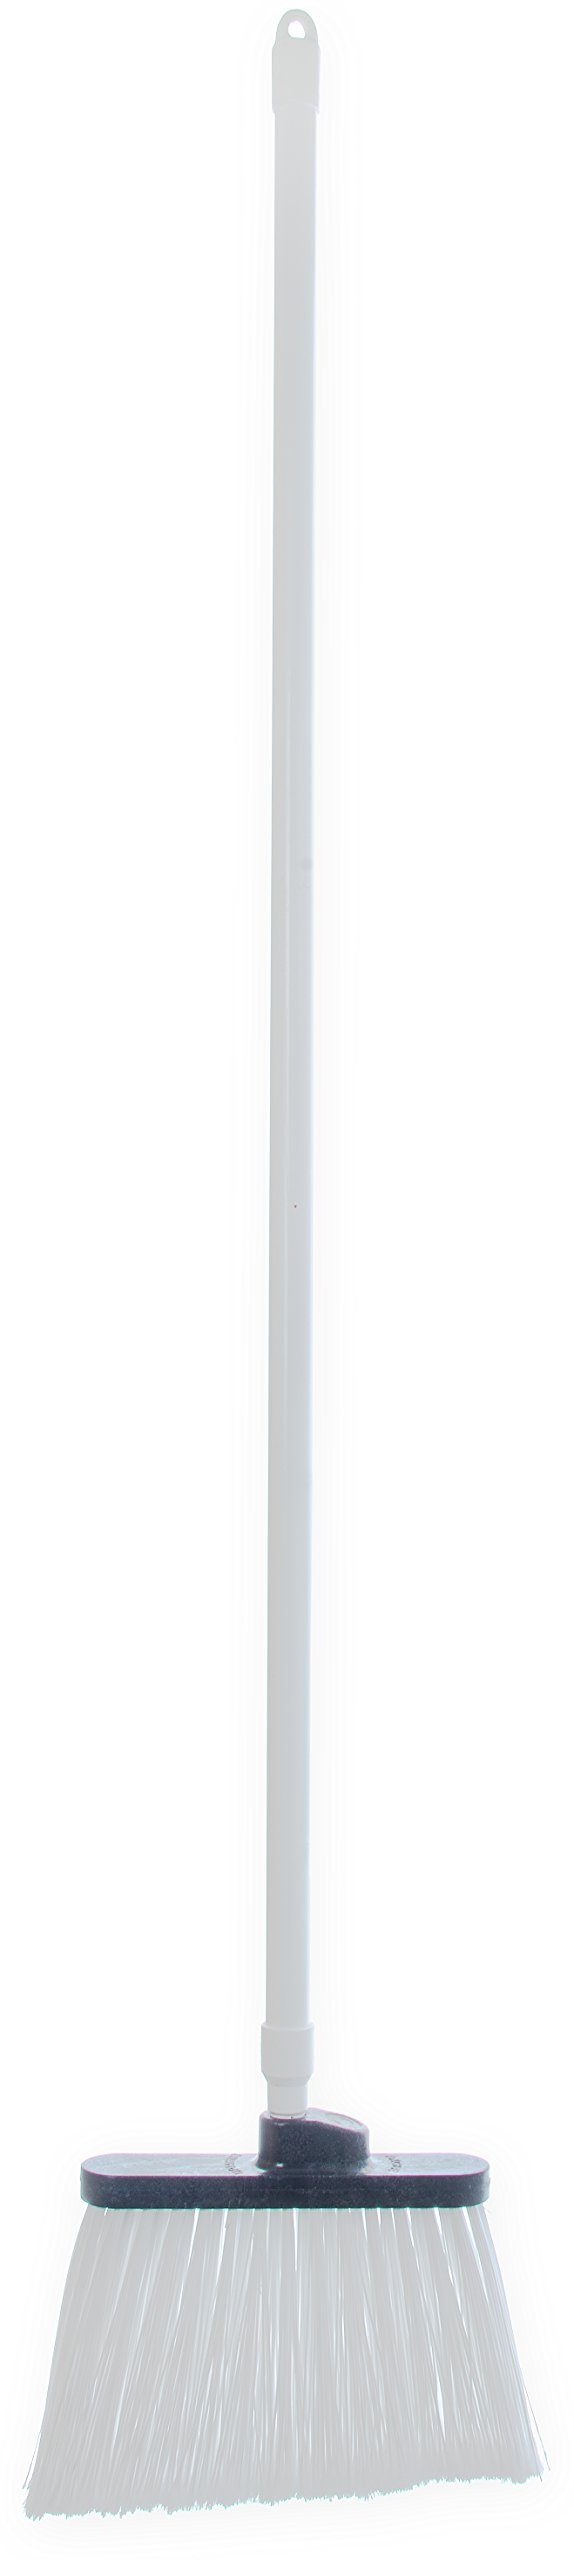 Carlisle 4108202 Sparta Duo-Sweep Flagged Angle Broom with Fiberglass Handle, 54'' Length, White (Pack of 12) by Carlisle